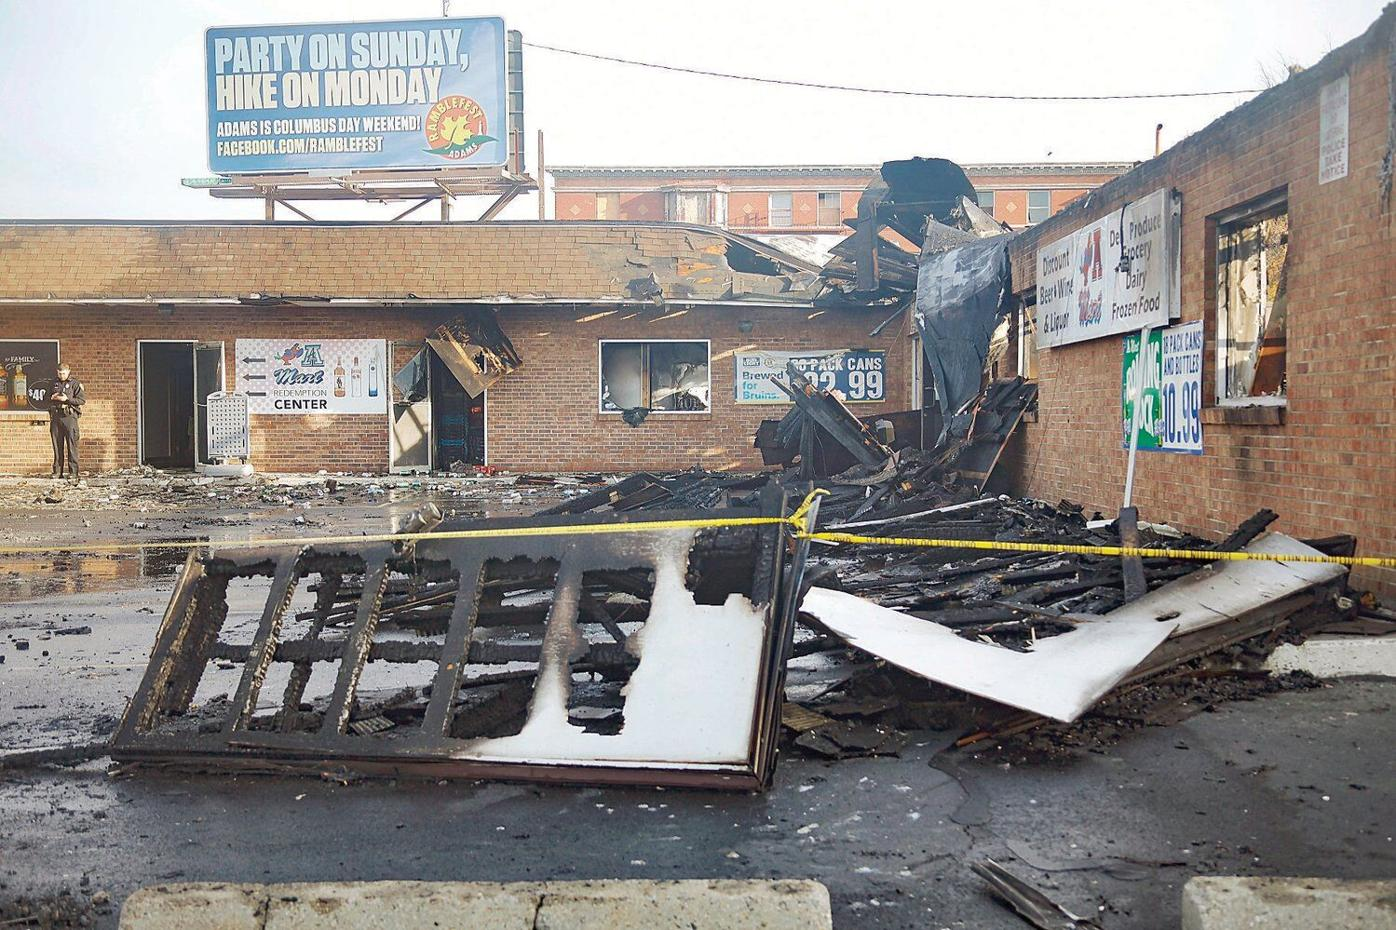 Police: Arson cause of A-Mart fire in Pittsfield; arrest made